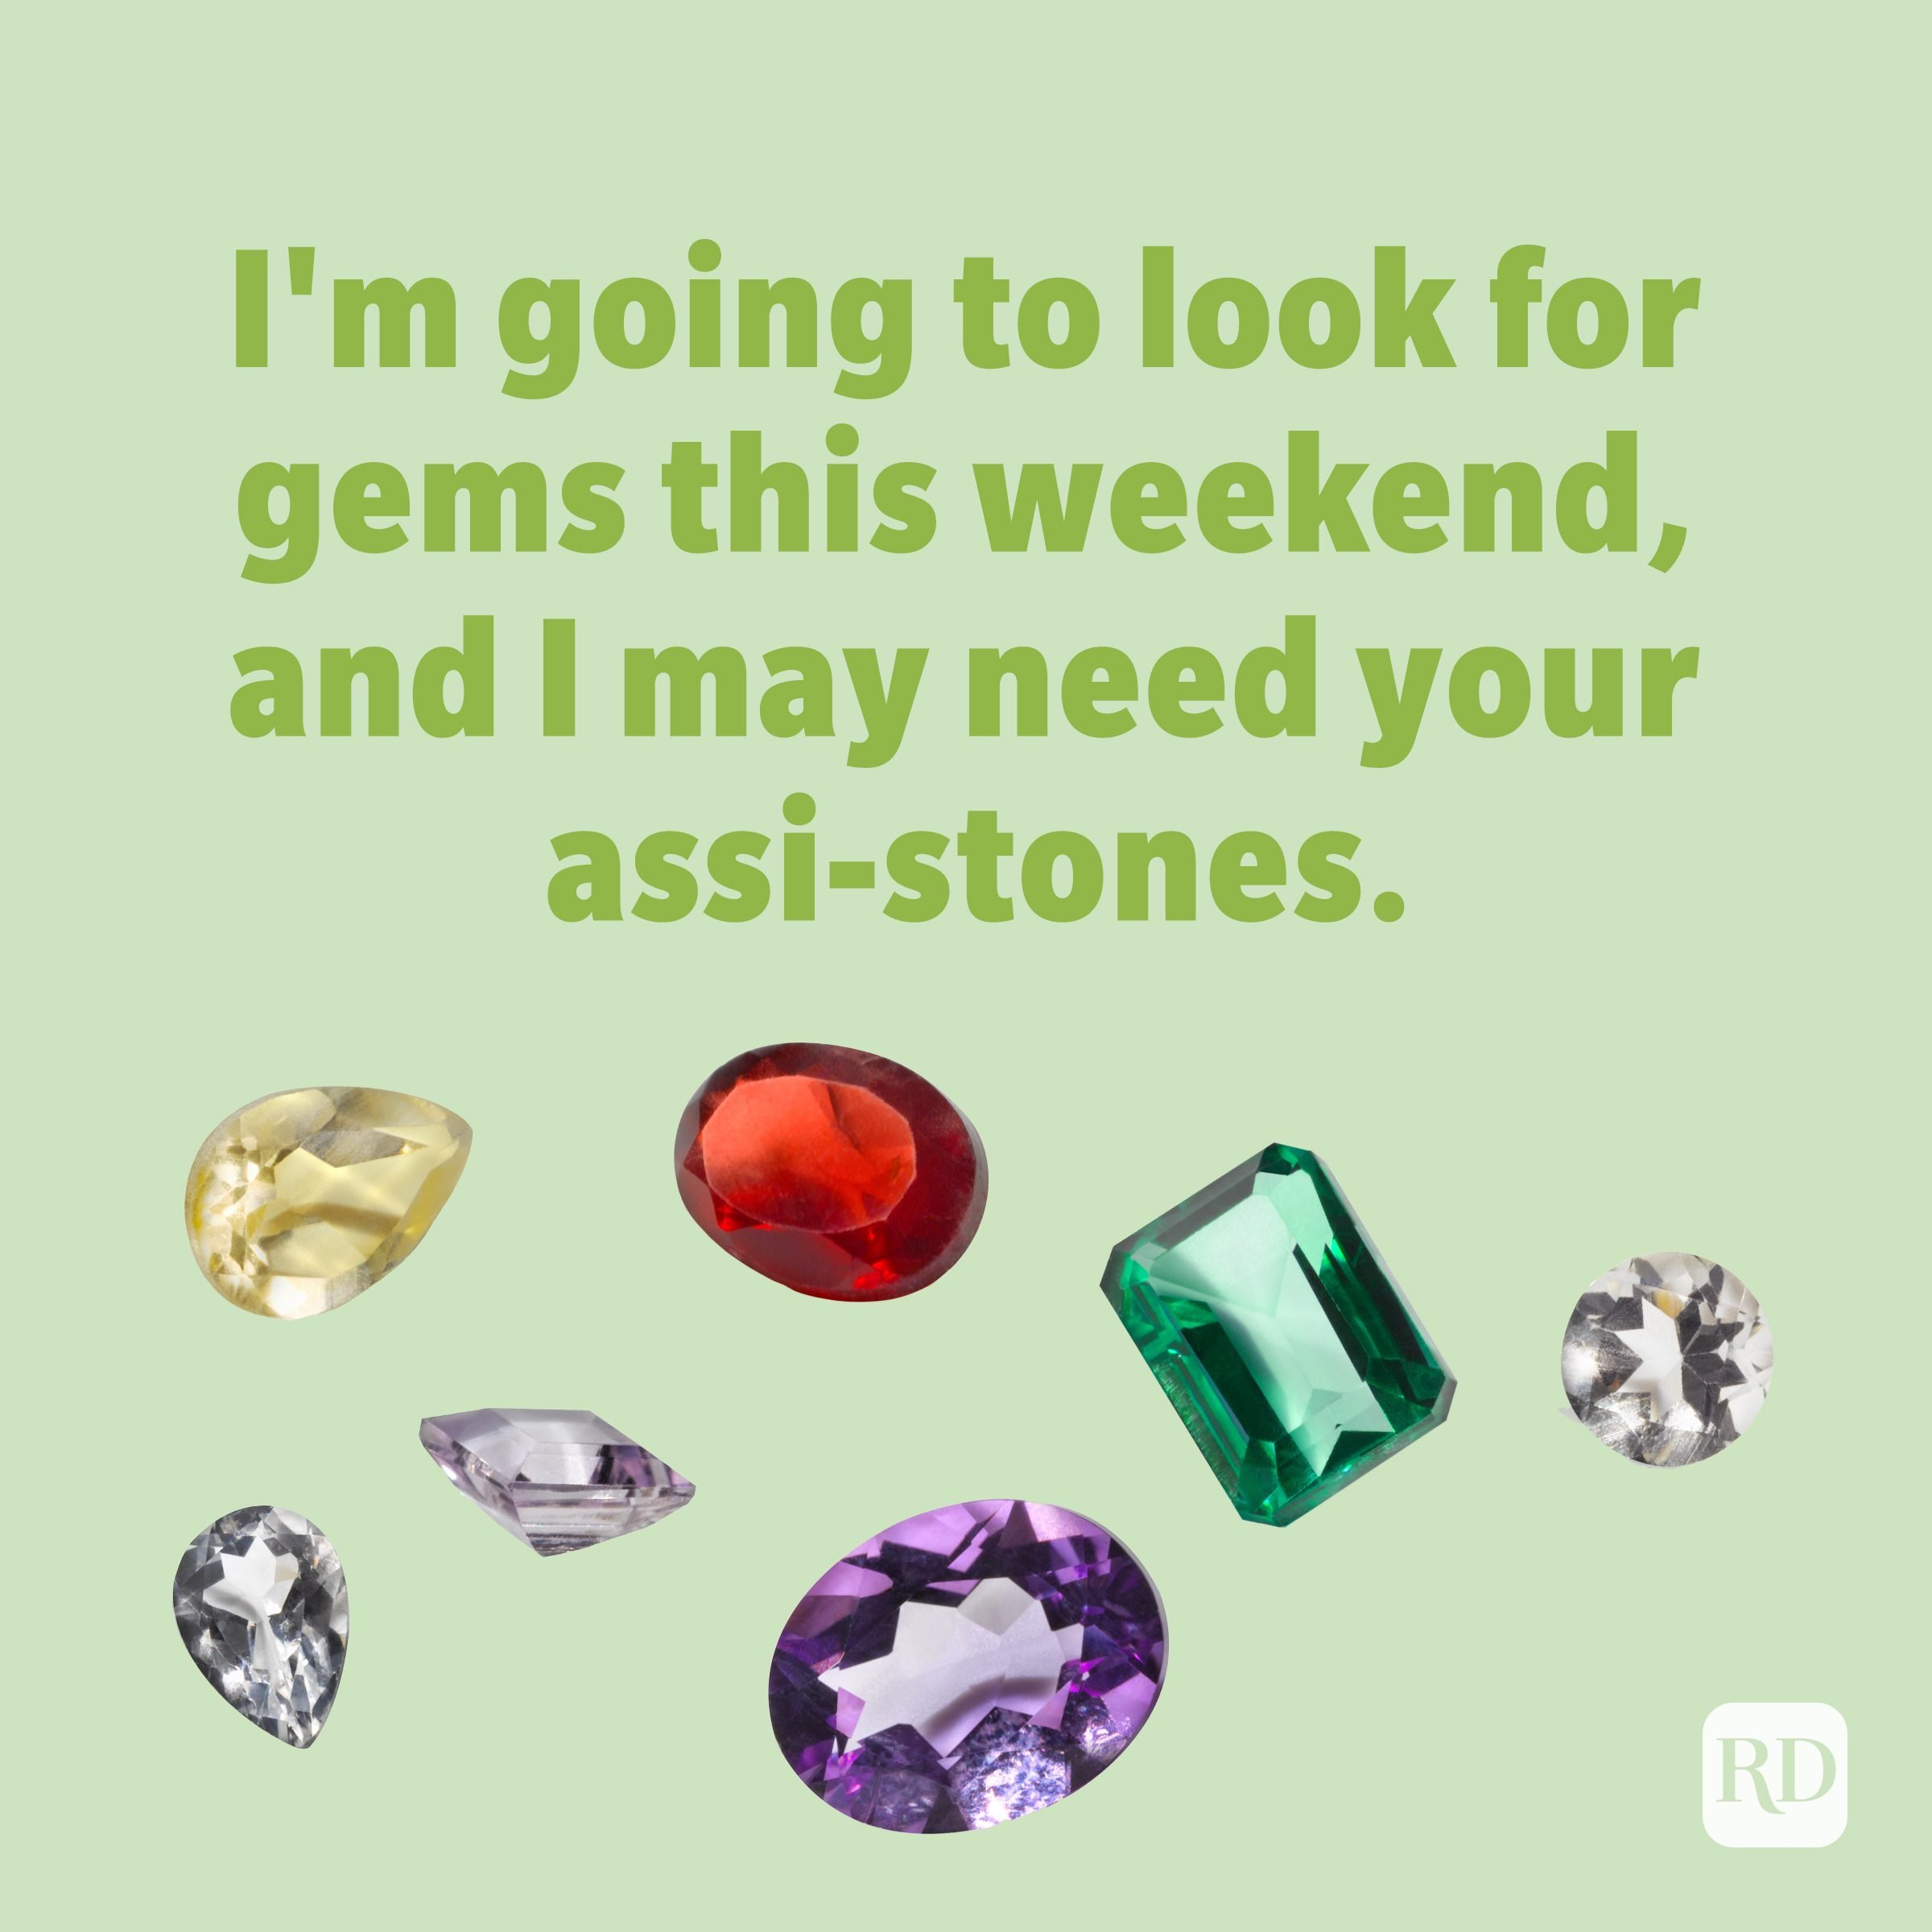 I'm going to look for gems this weekend, and I may need your assi-stones. Rock puns